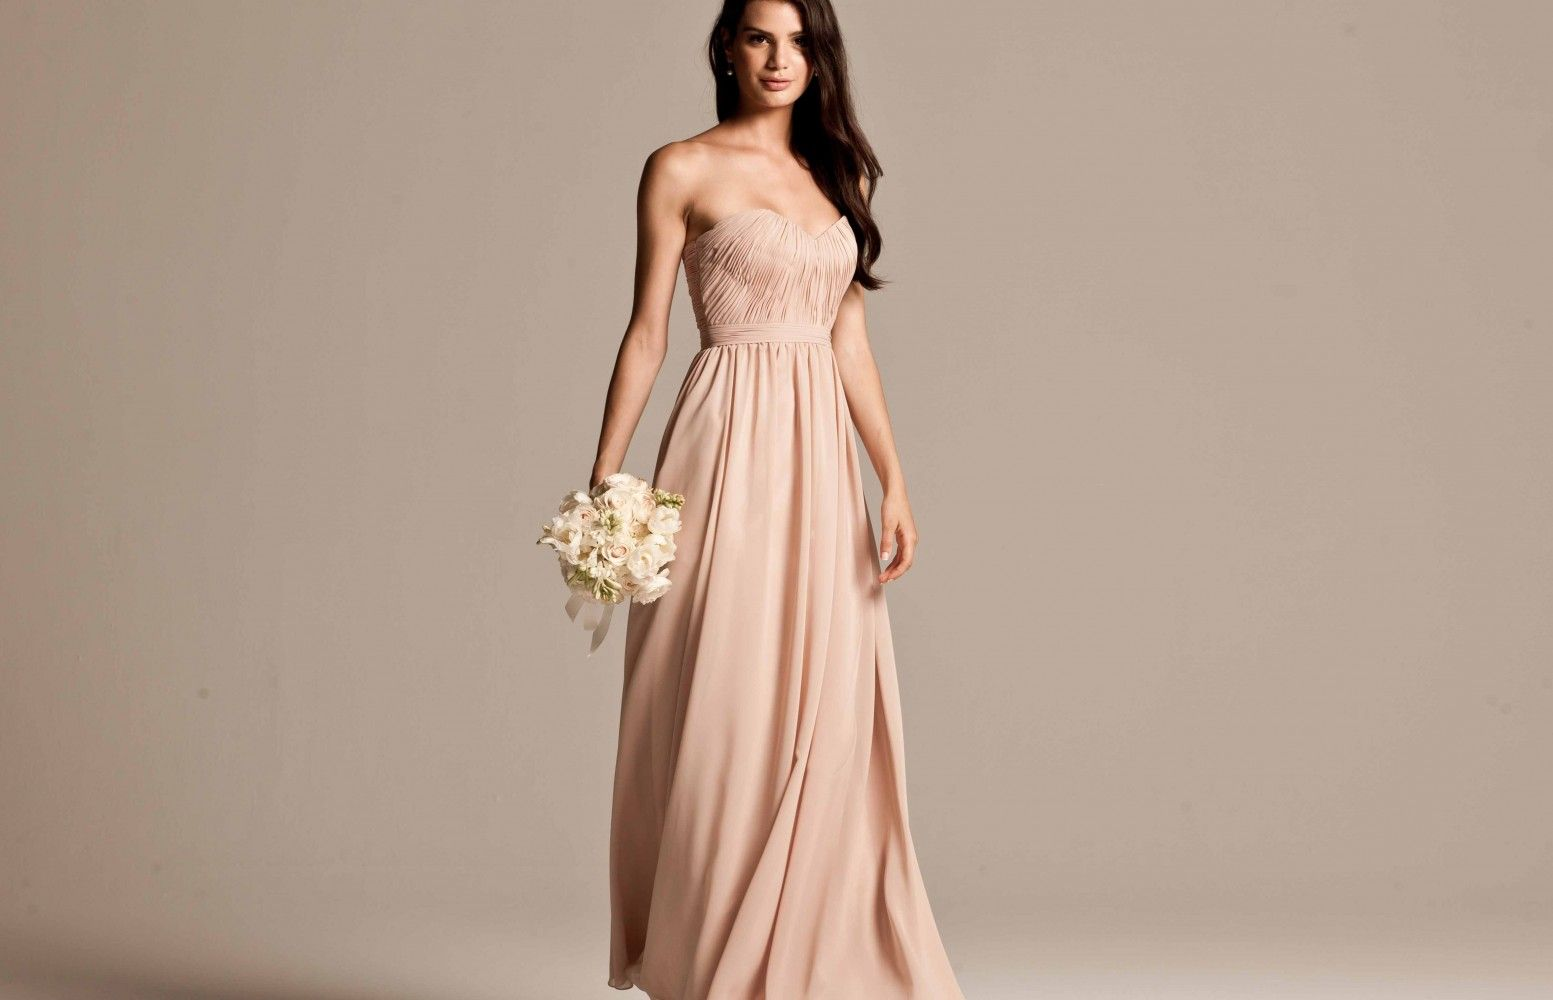 Maid Of Honor Dresses 2017 For 3